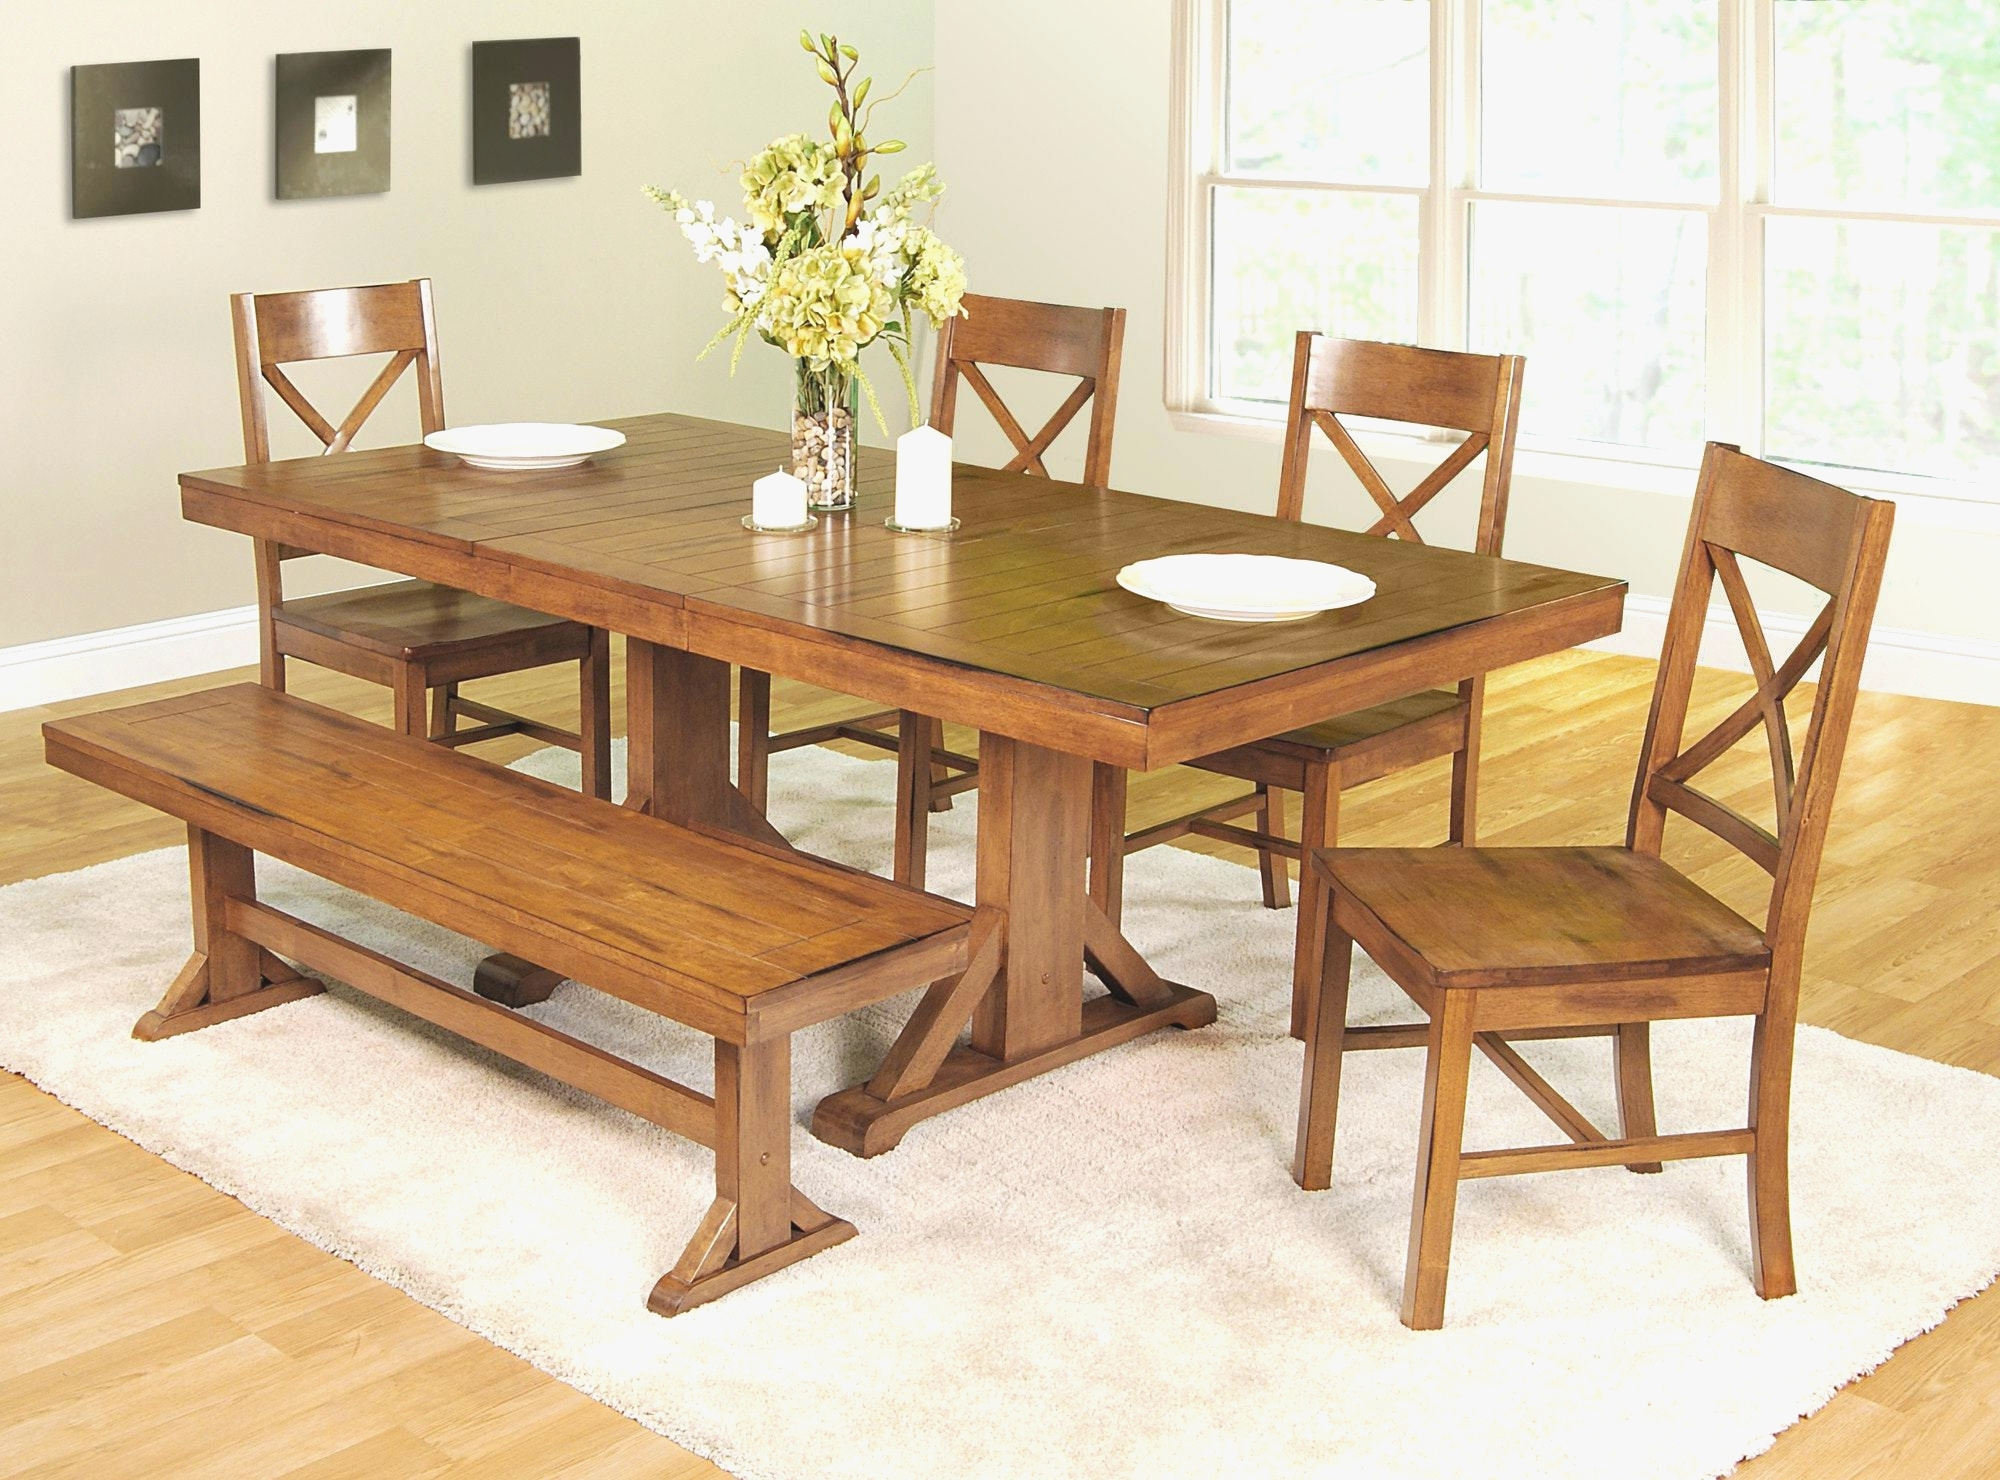 2017 Kitchen Table Bench With Back Elegant Bench Impressive Kitchen Table Throughout Bench With Back For Dining Tables (Gallery 25 of 25)